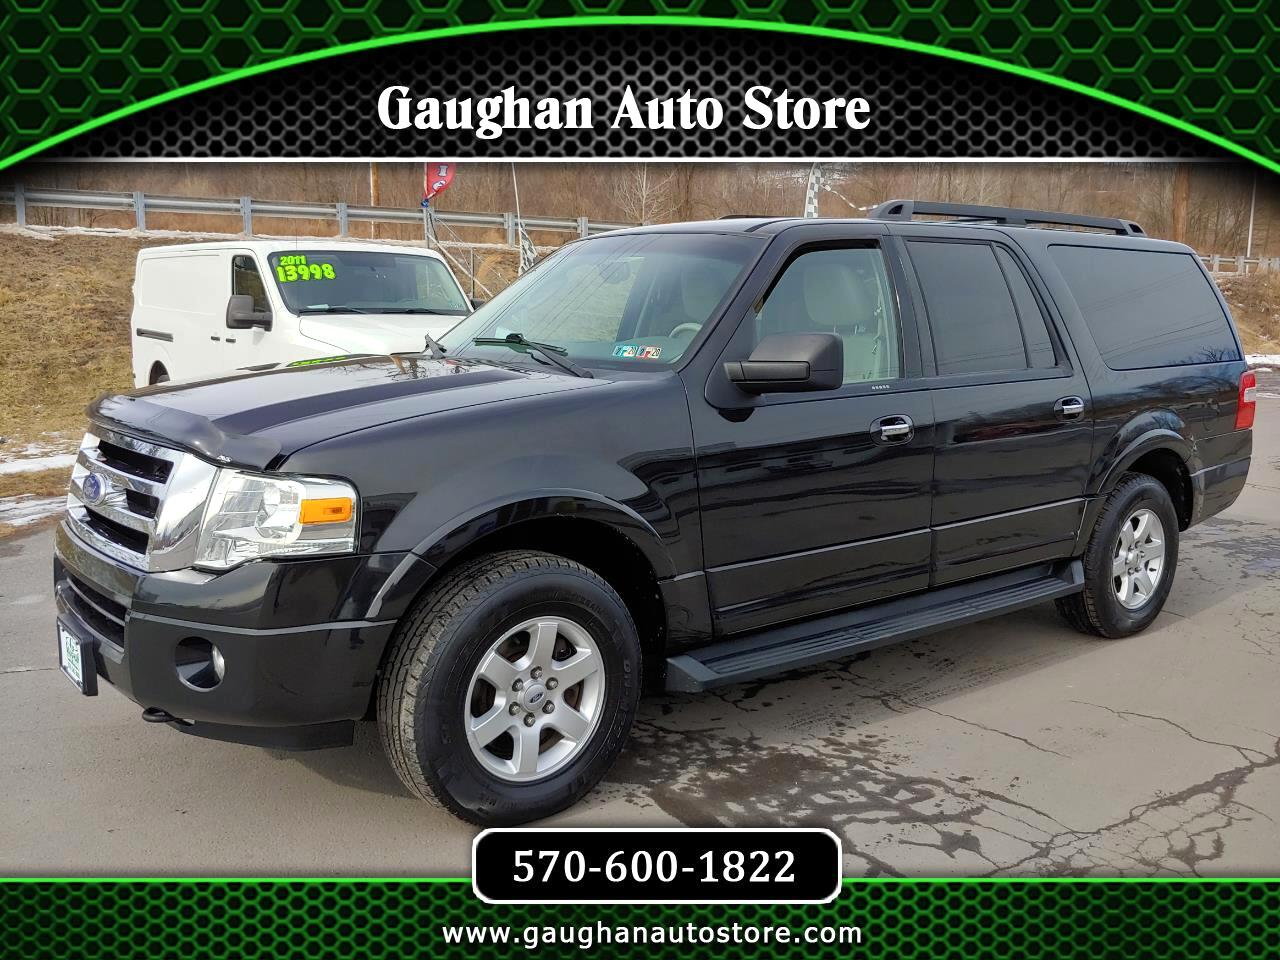 2010 Ford Expedition EL 4WD XLT THIRD ROW SEATING